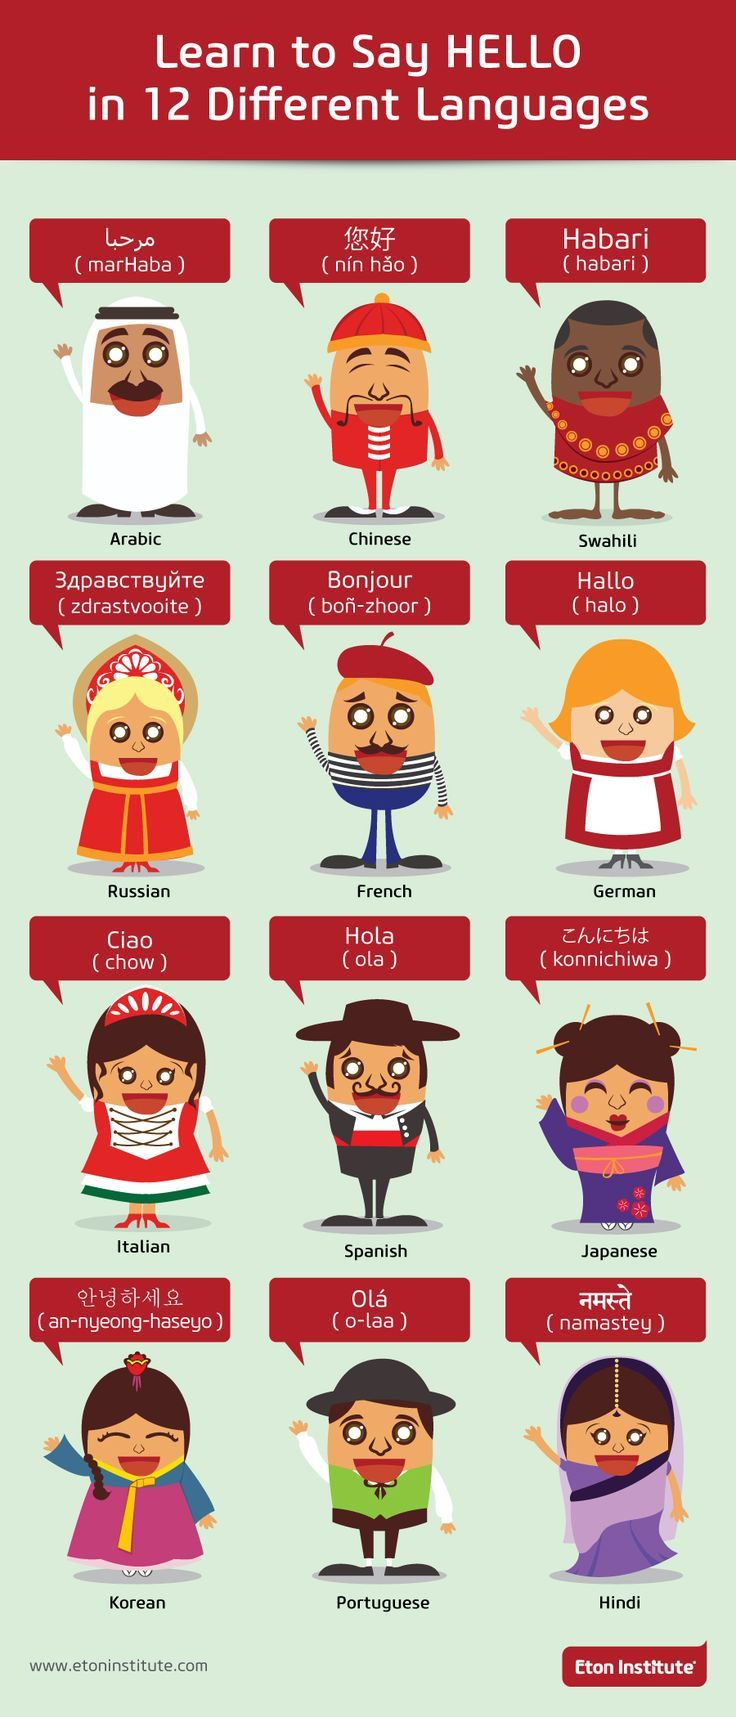 Learn how to say hello in different languages! Learning a new language can be a lot of fun. If you would like to see more of these, let us know.